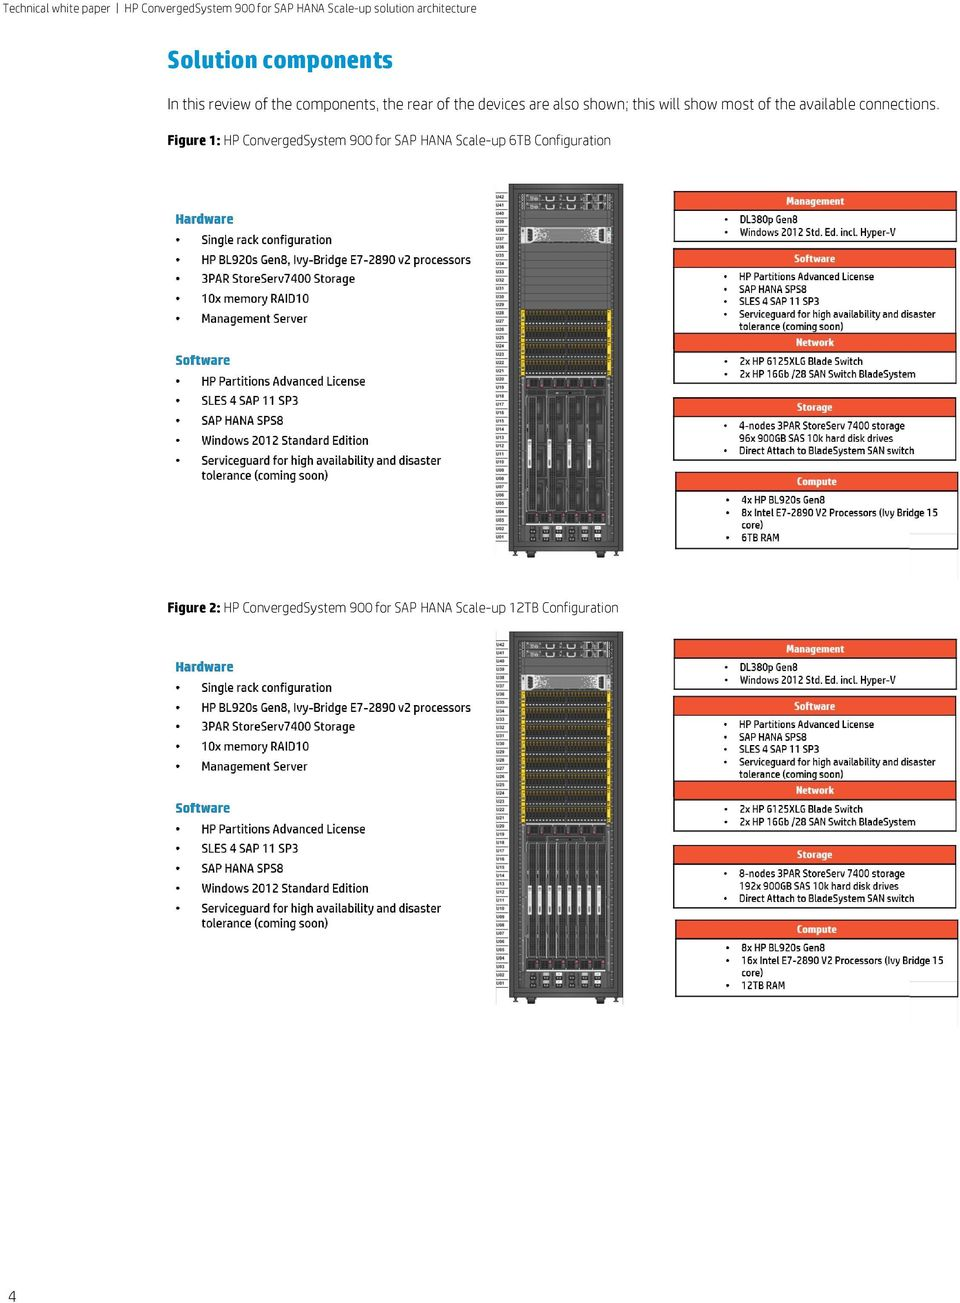 Figure 1: HP ConvergedSystem 900 for SAP HANA Scale-up 6TB Configuration